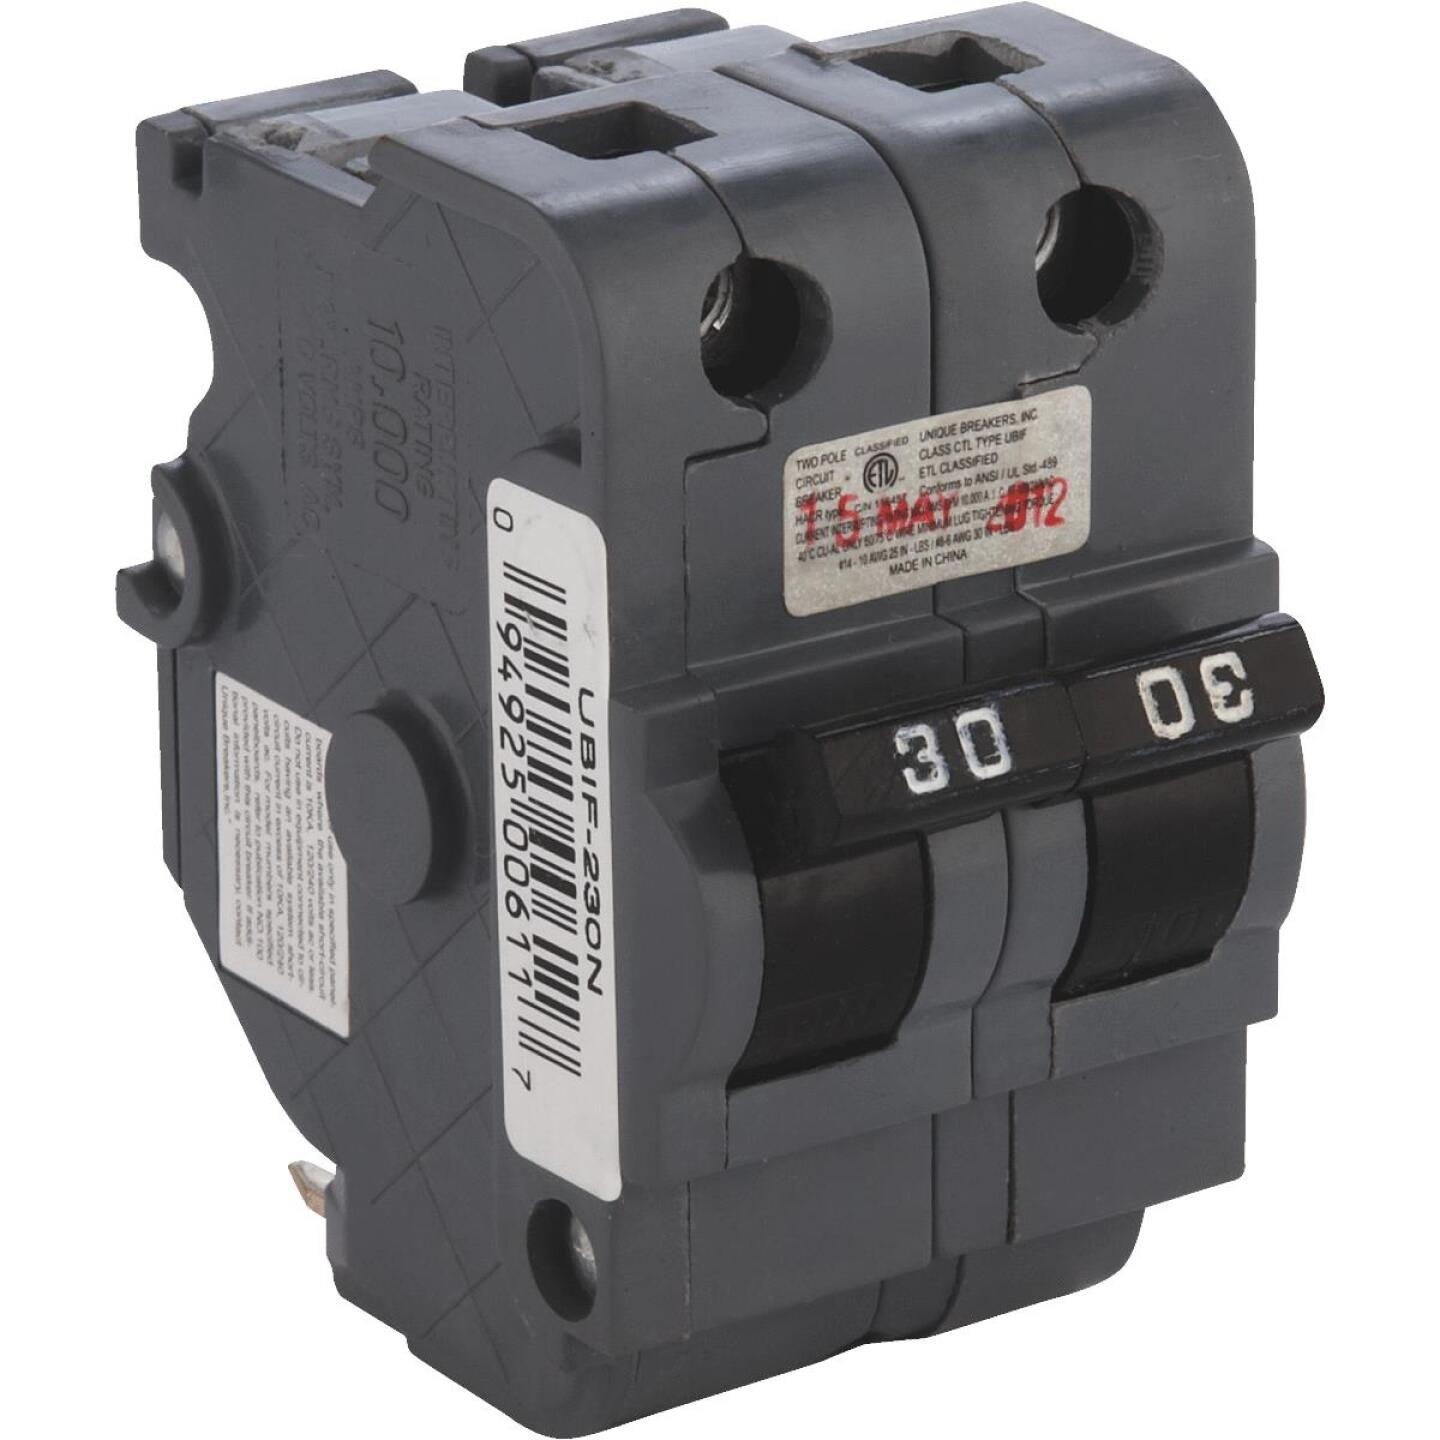 Connecticut Electric 30A Double-Pole Standard Trip Packaged Replacement Circuit Breaker For Federal Pacific Image 1